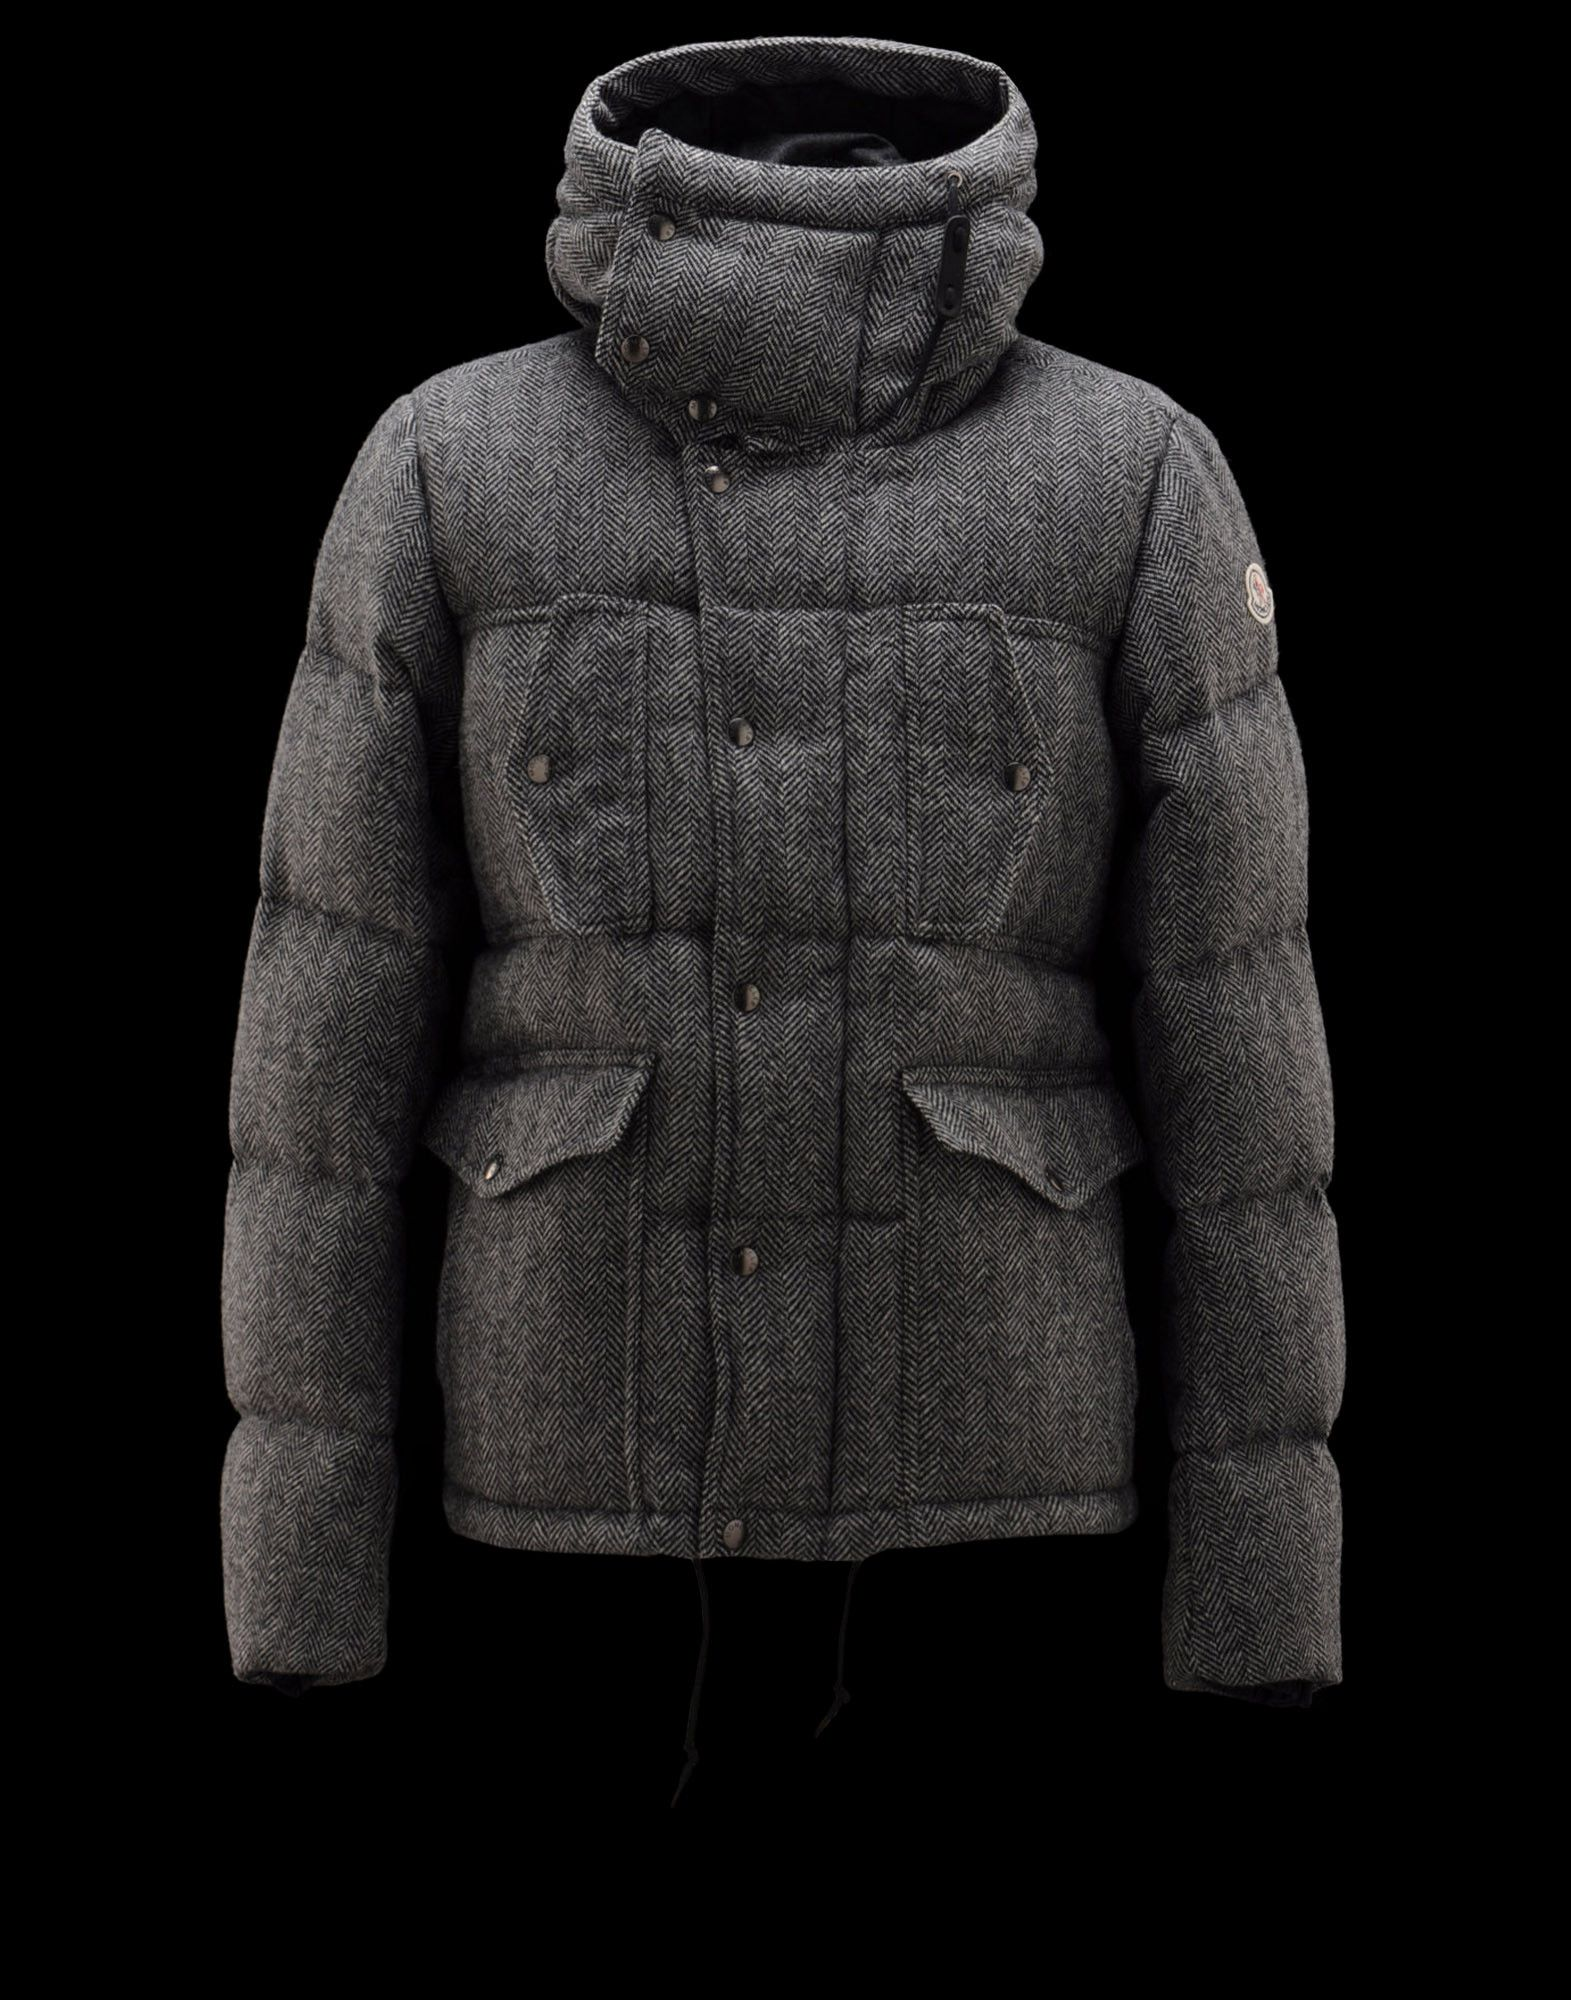 2008594d4 Clothing and down jackets for men, women and kids | Fashion (men ...